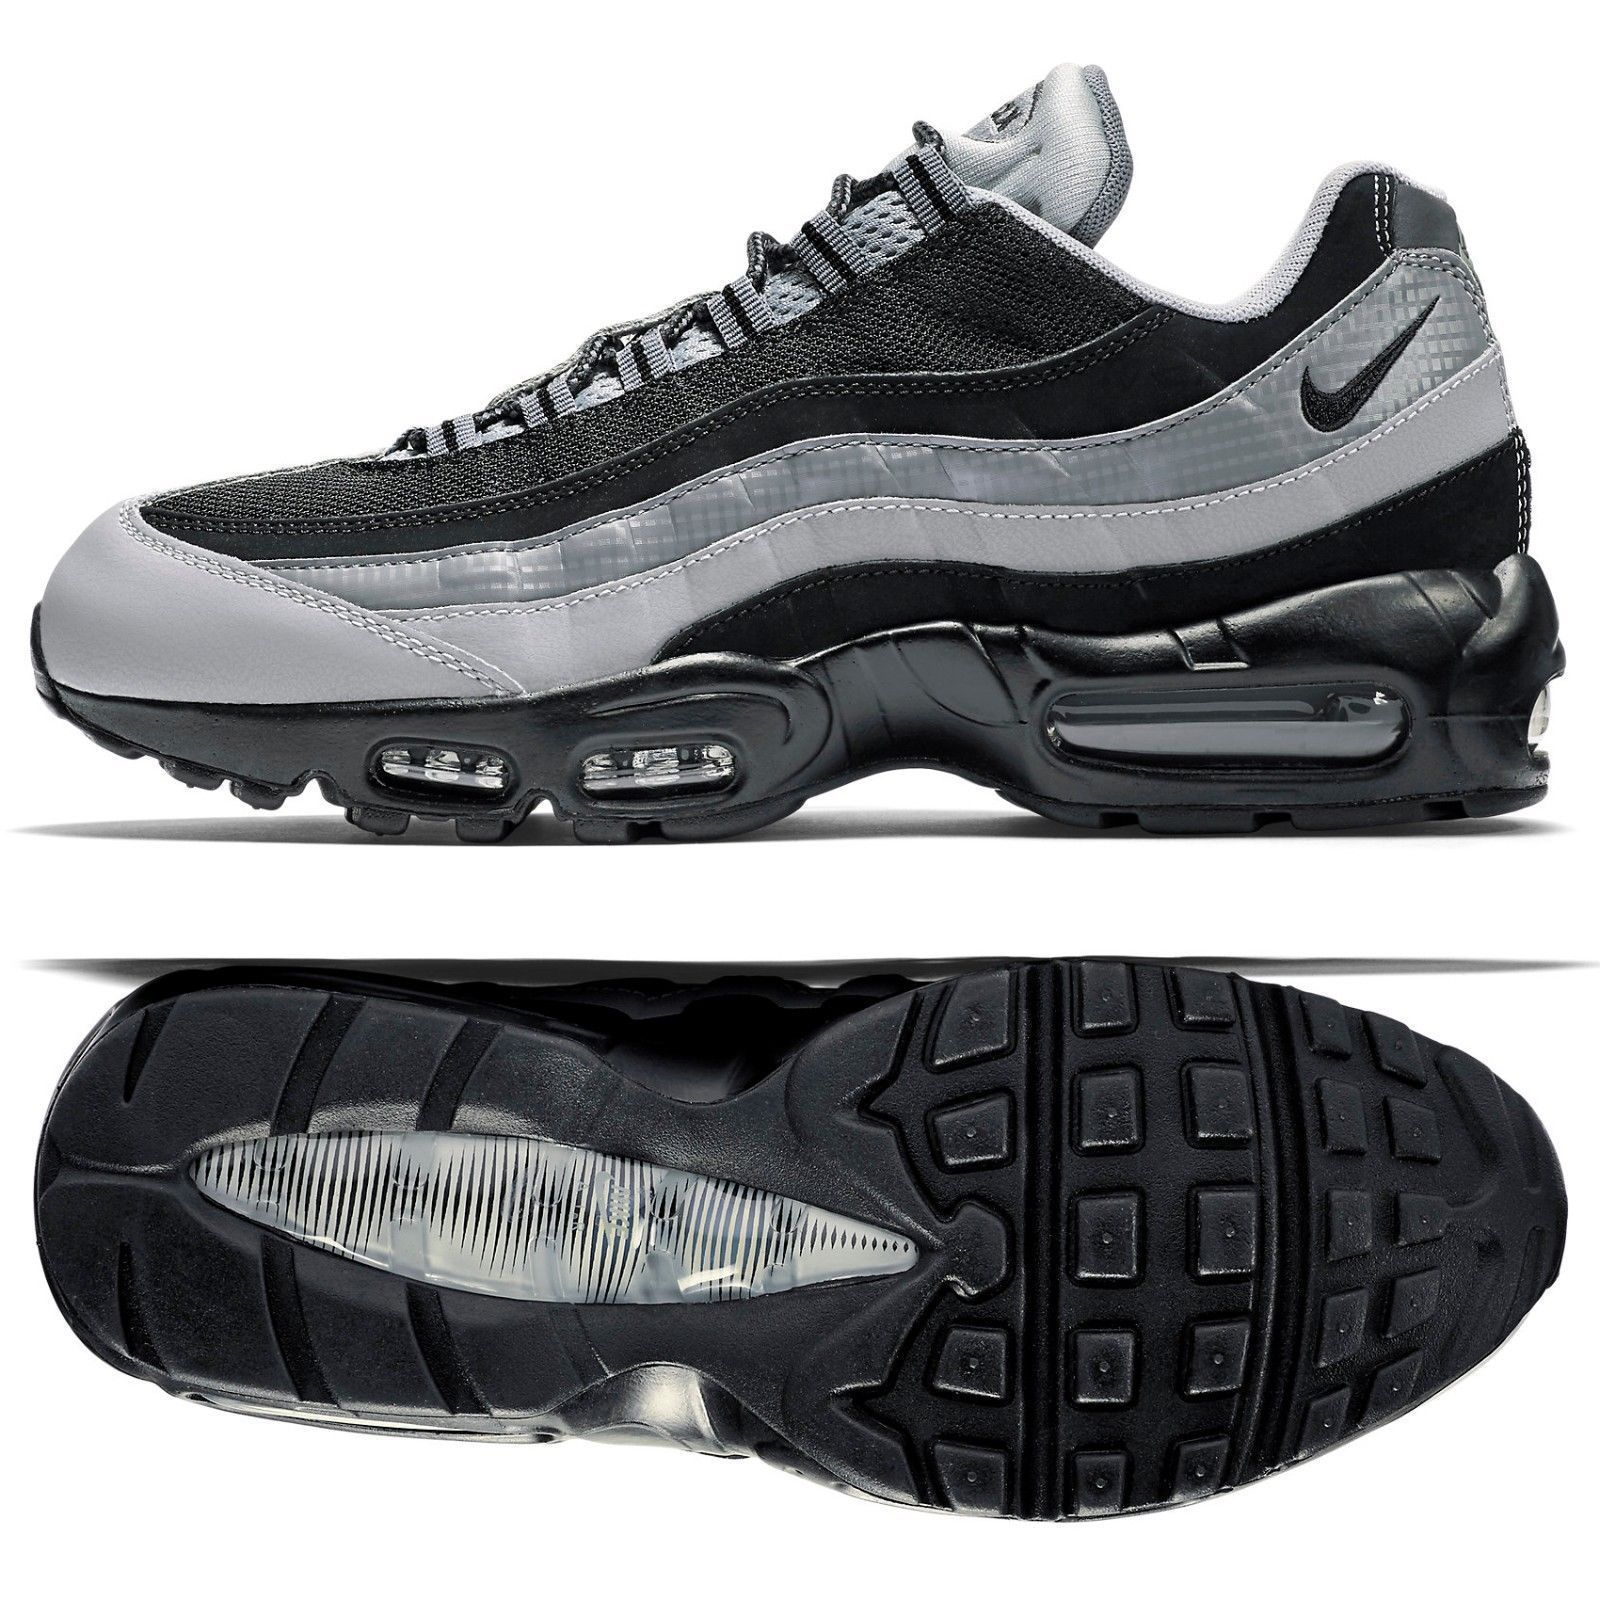 separation shoes ade1e 99db9 Nike Air Max 95 Essential Og BLACKWOLF Grey and 50 similar items. 57